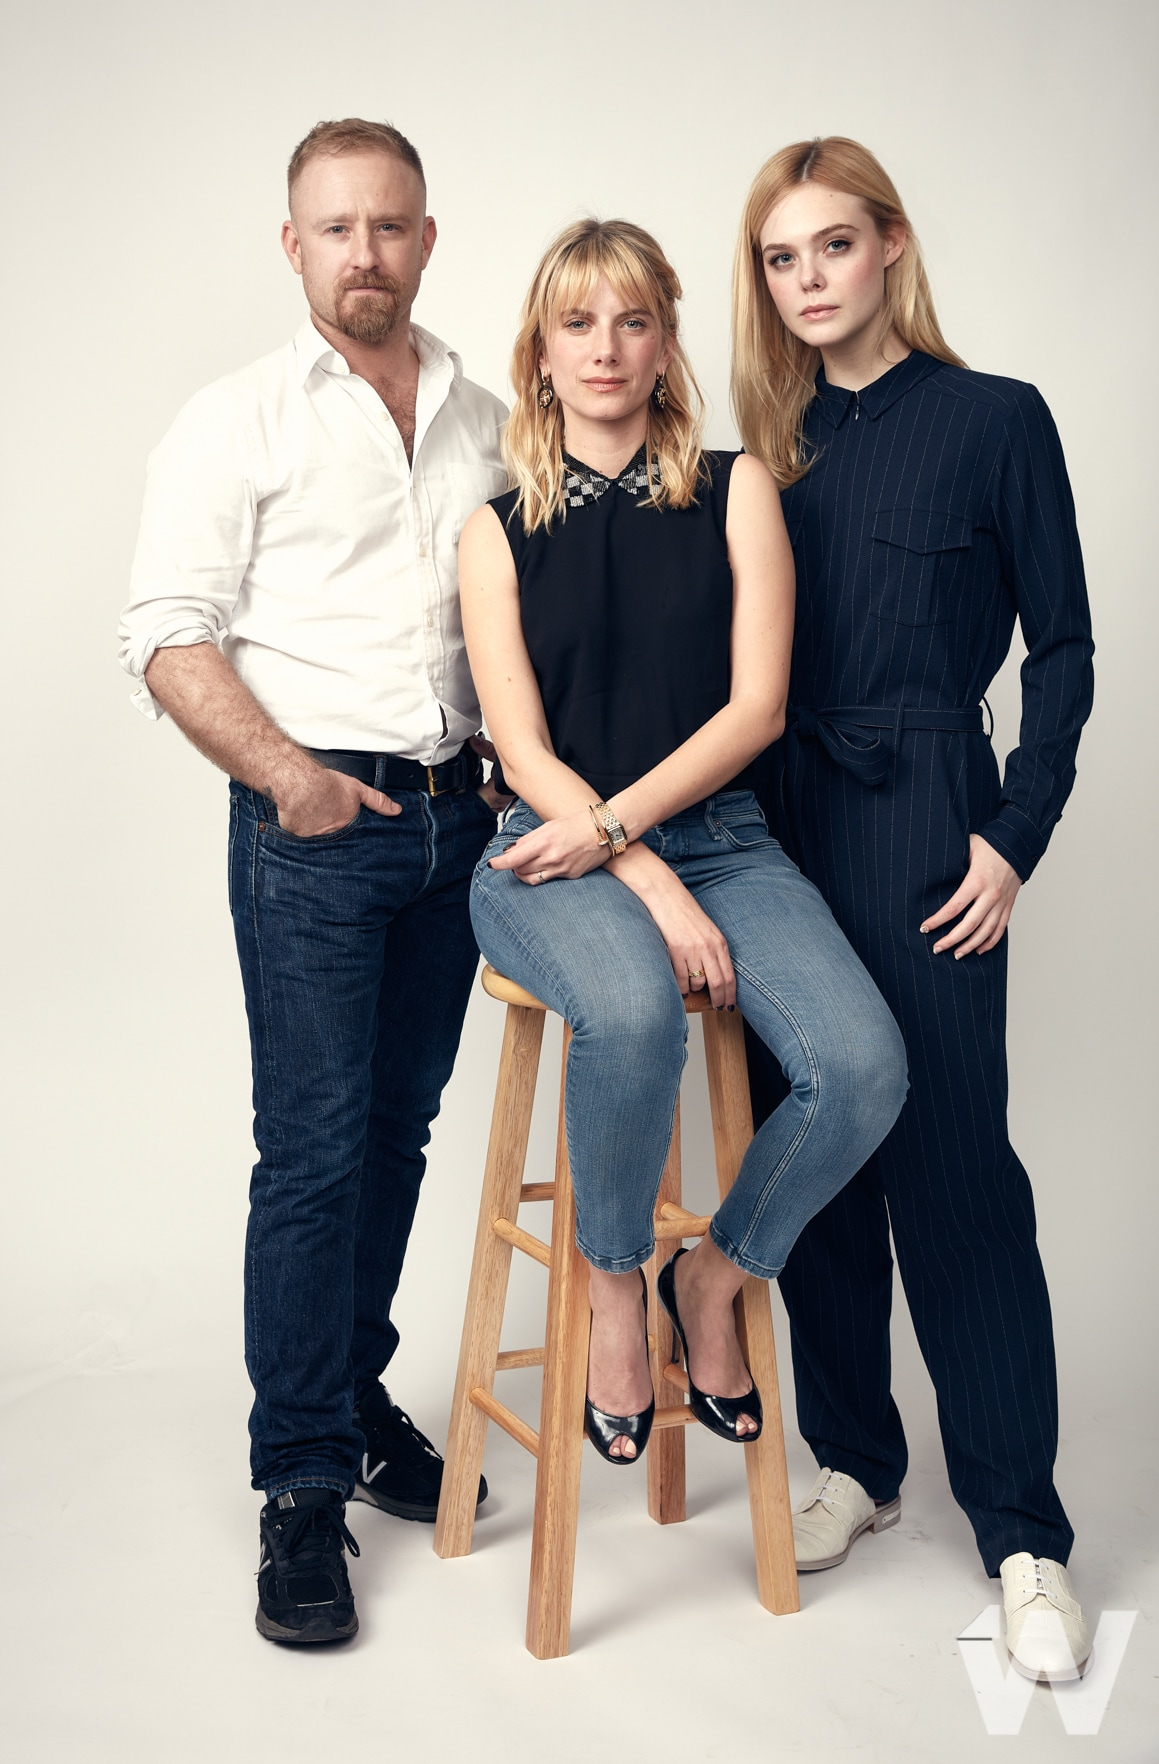 SXSW 2018 Ben Foster, Melanie Laurent, and Elle Fanning Galveston